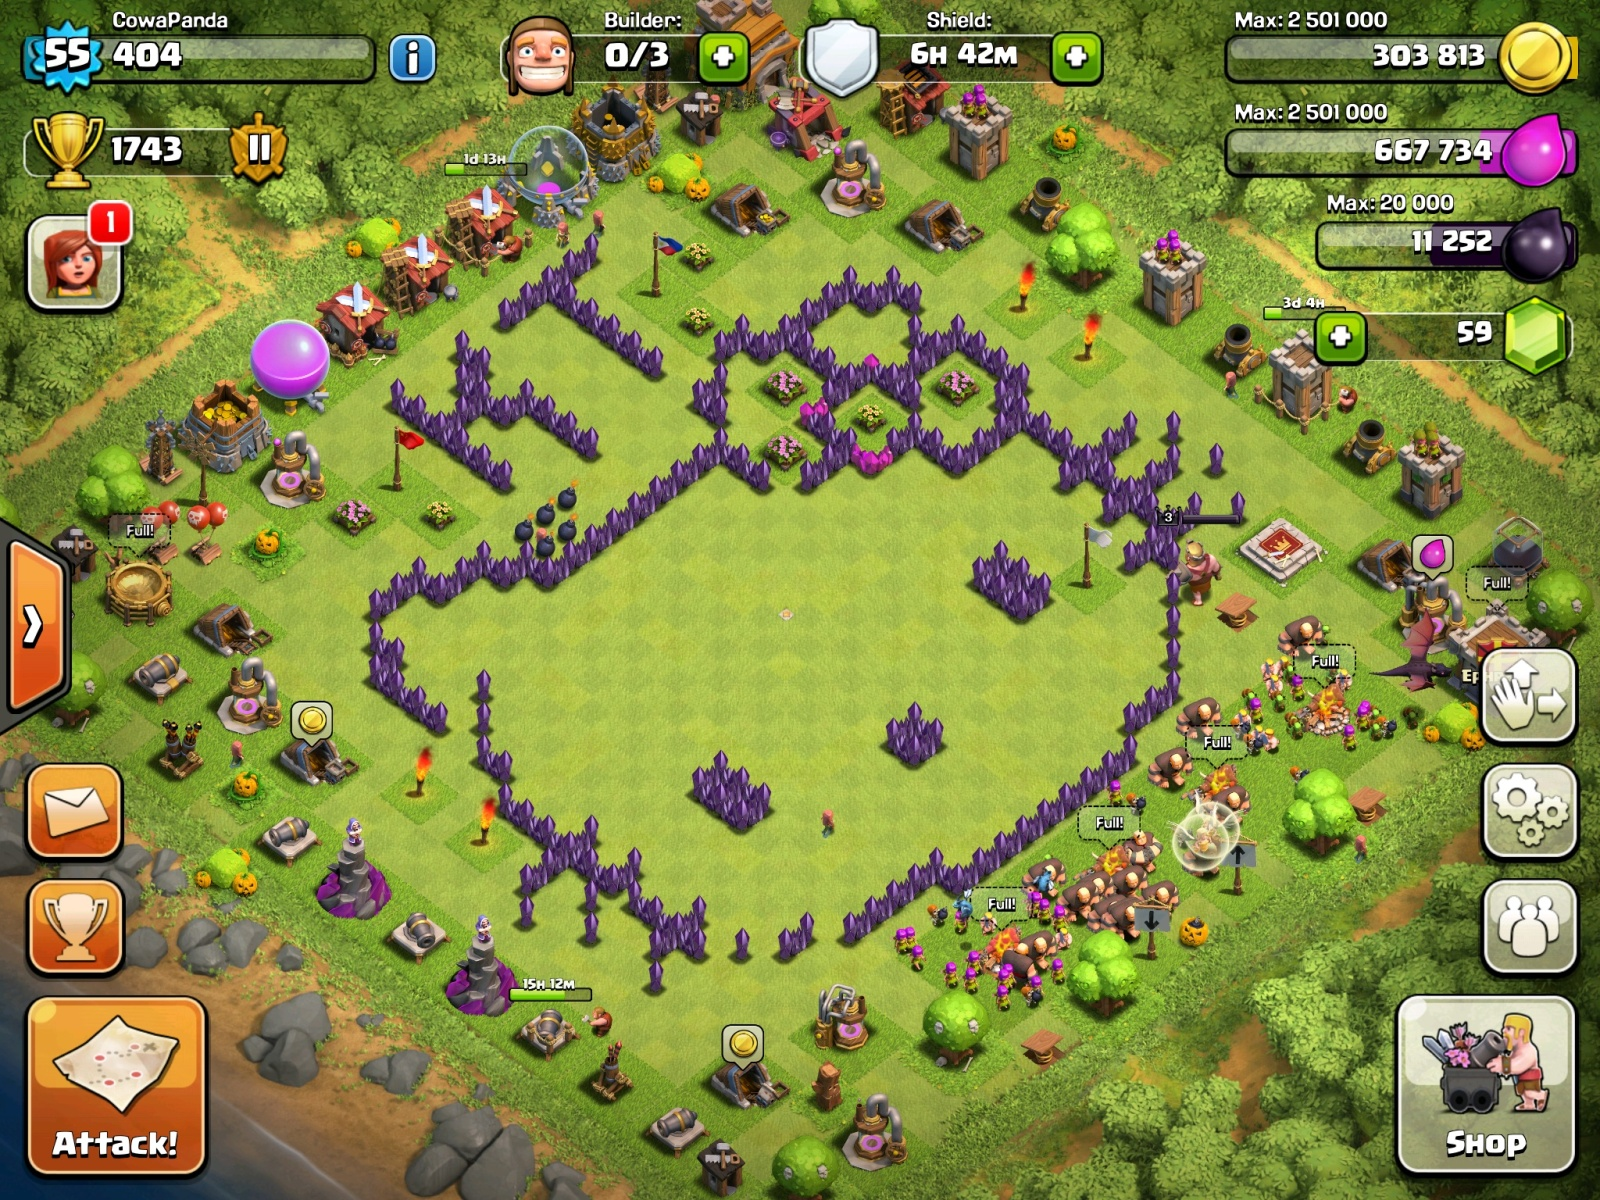 Base Base Keren Dan Unik Di Game Clash Of Clans JOS998 BLOG